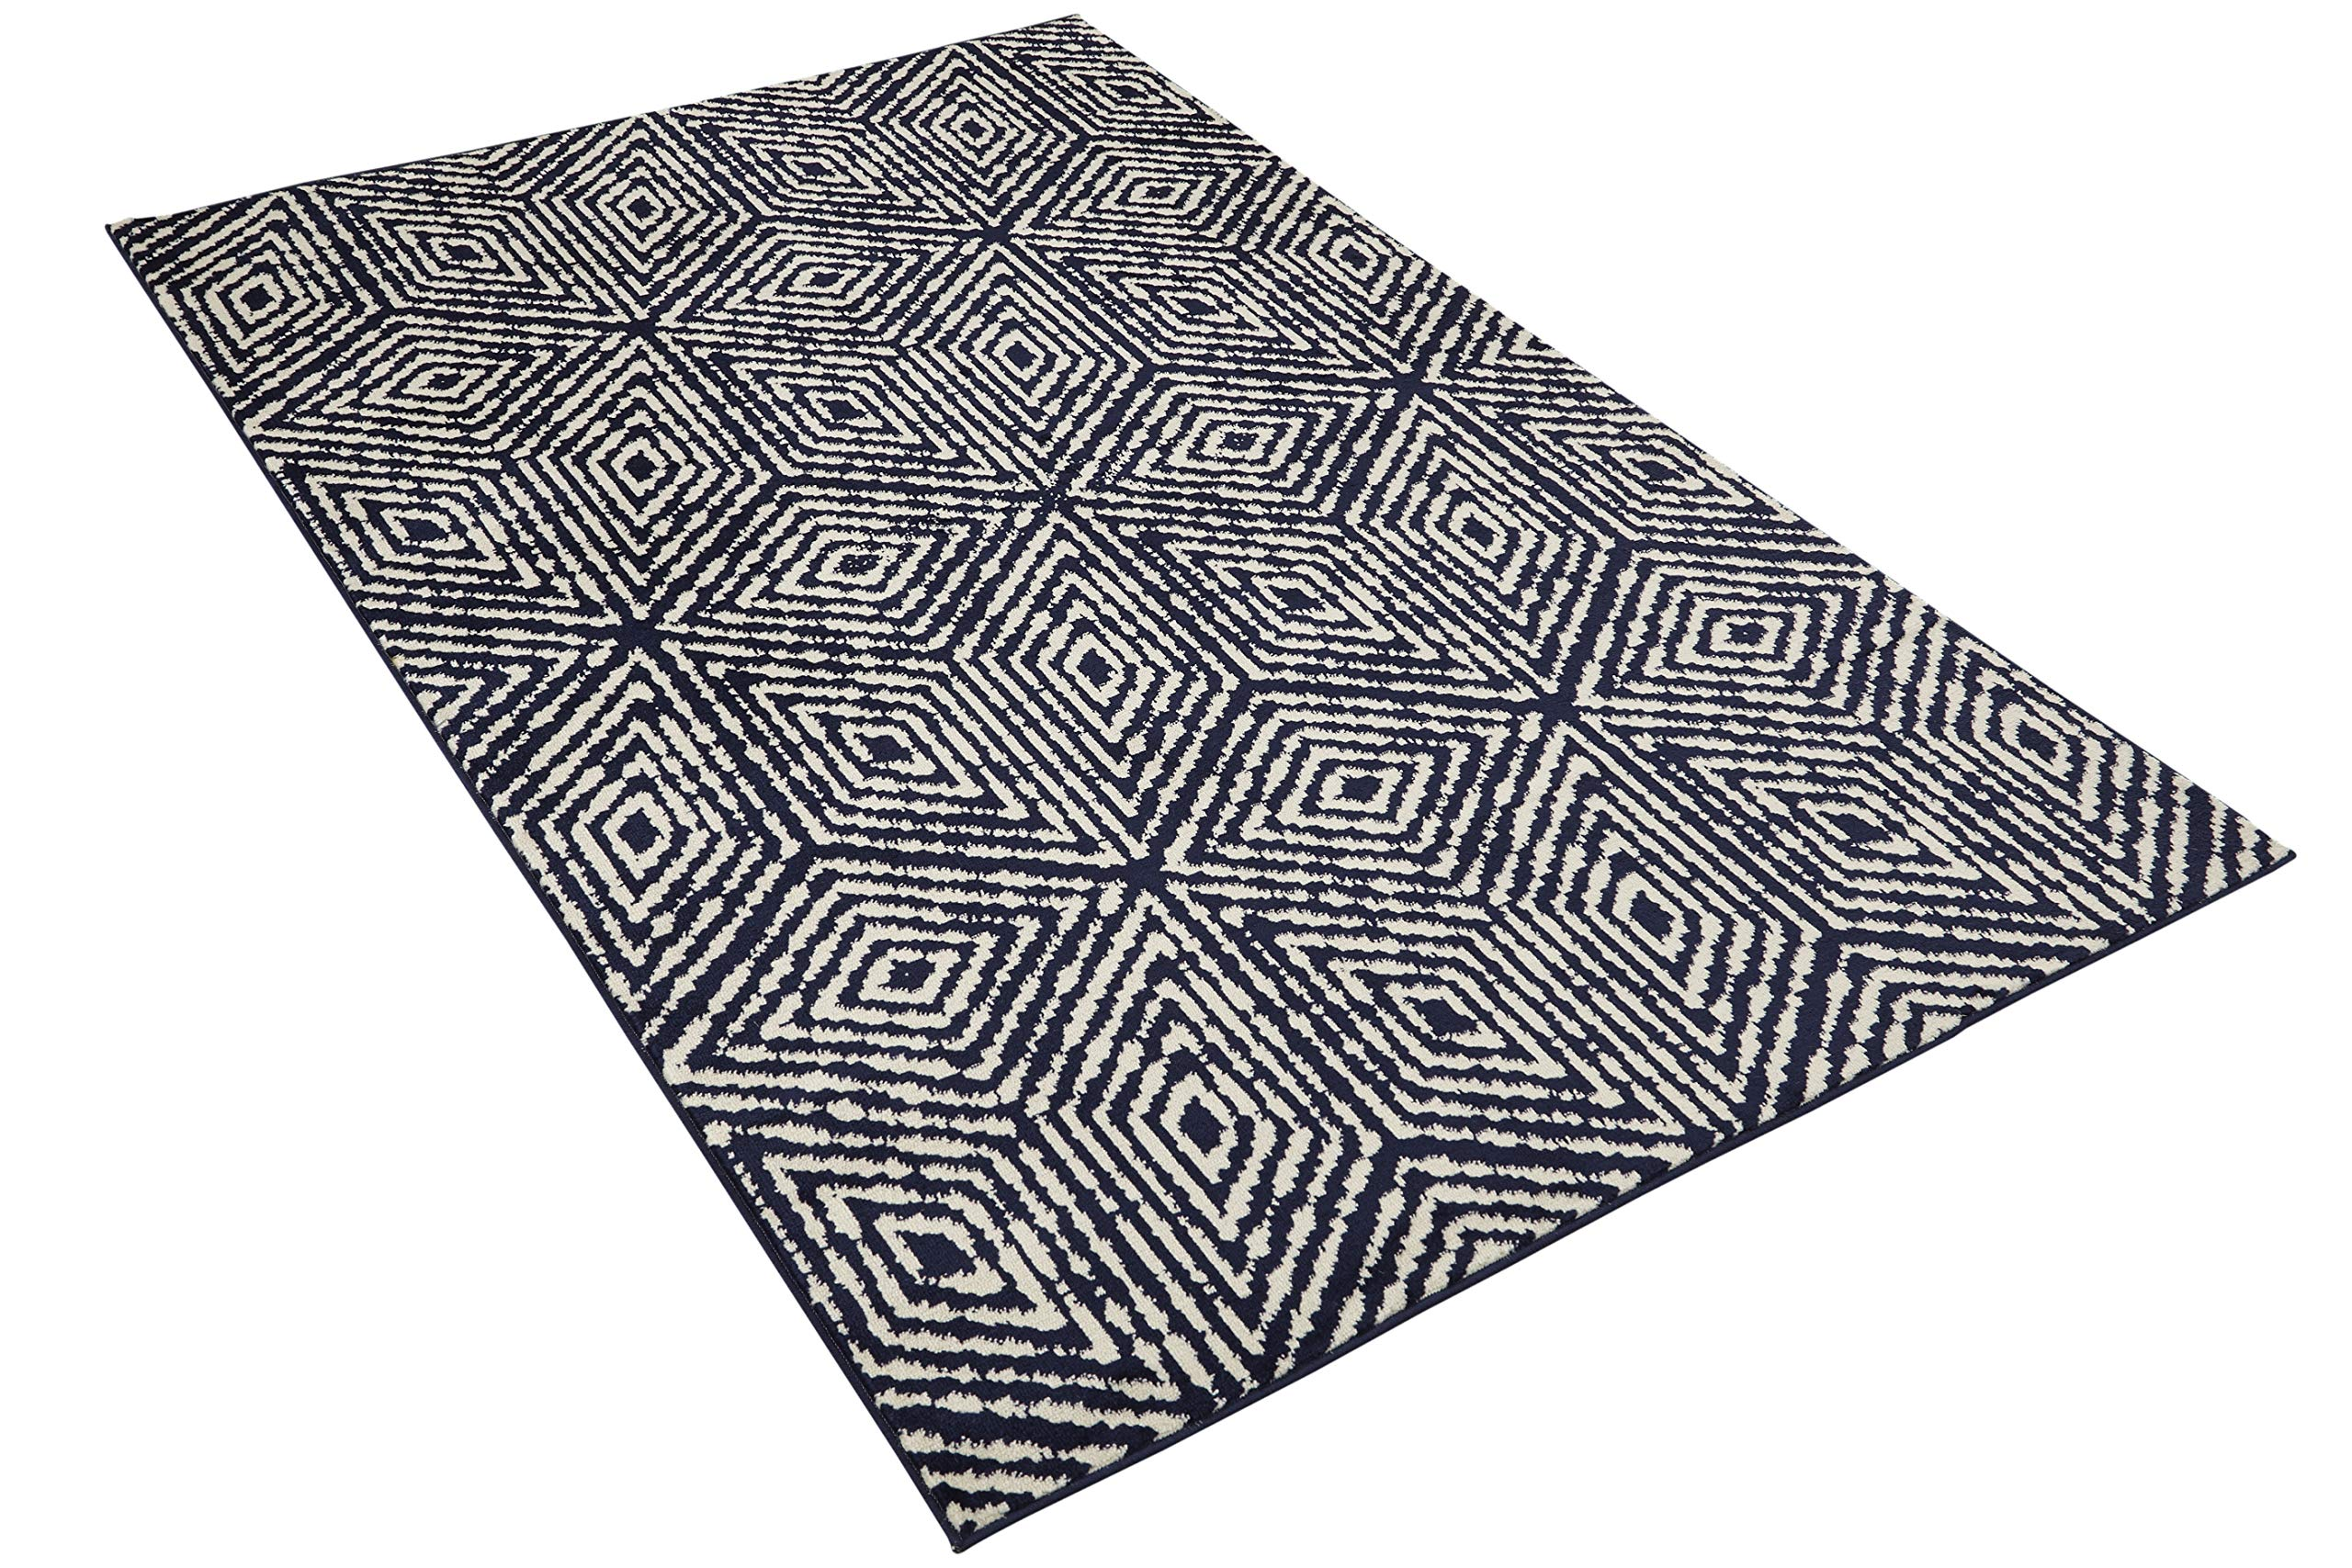 Diagona Designs Contemporary Geometric Cubes Design Modern 8' X 10' Area Rug, 94'' W x 118'' L, Navy/Ivory (JAS2195) by Diagona Designs (Image #4)